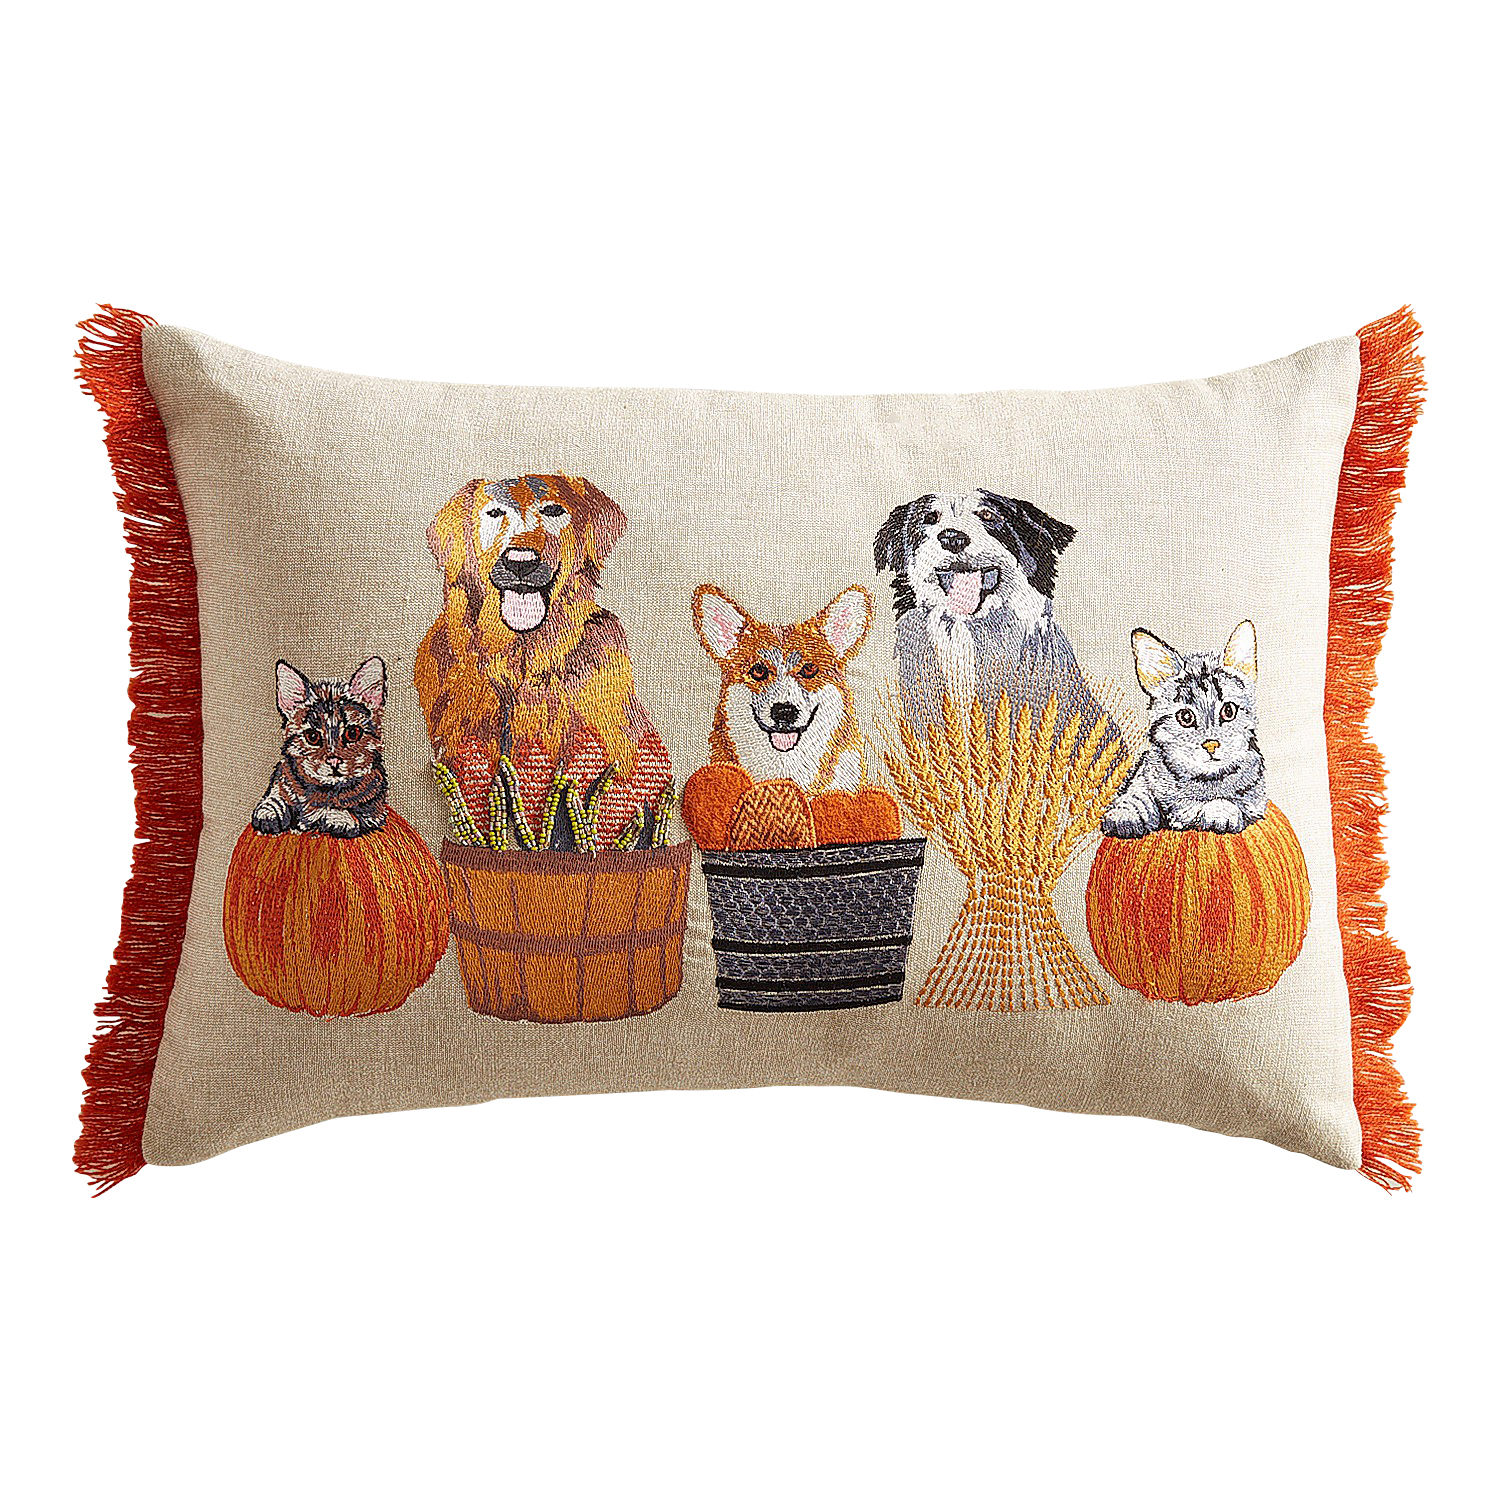 Dogs & Cats Harvest Lumbar Pillow